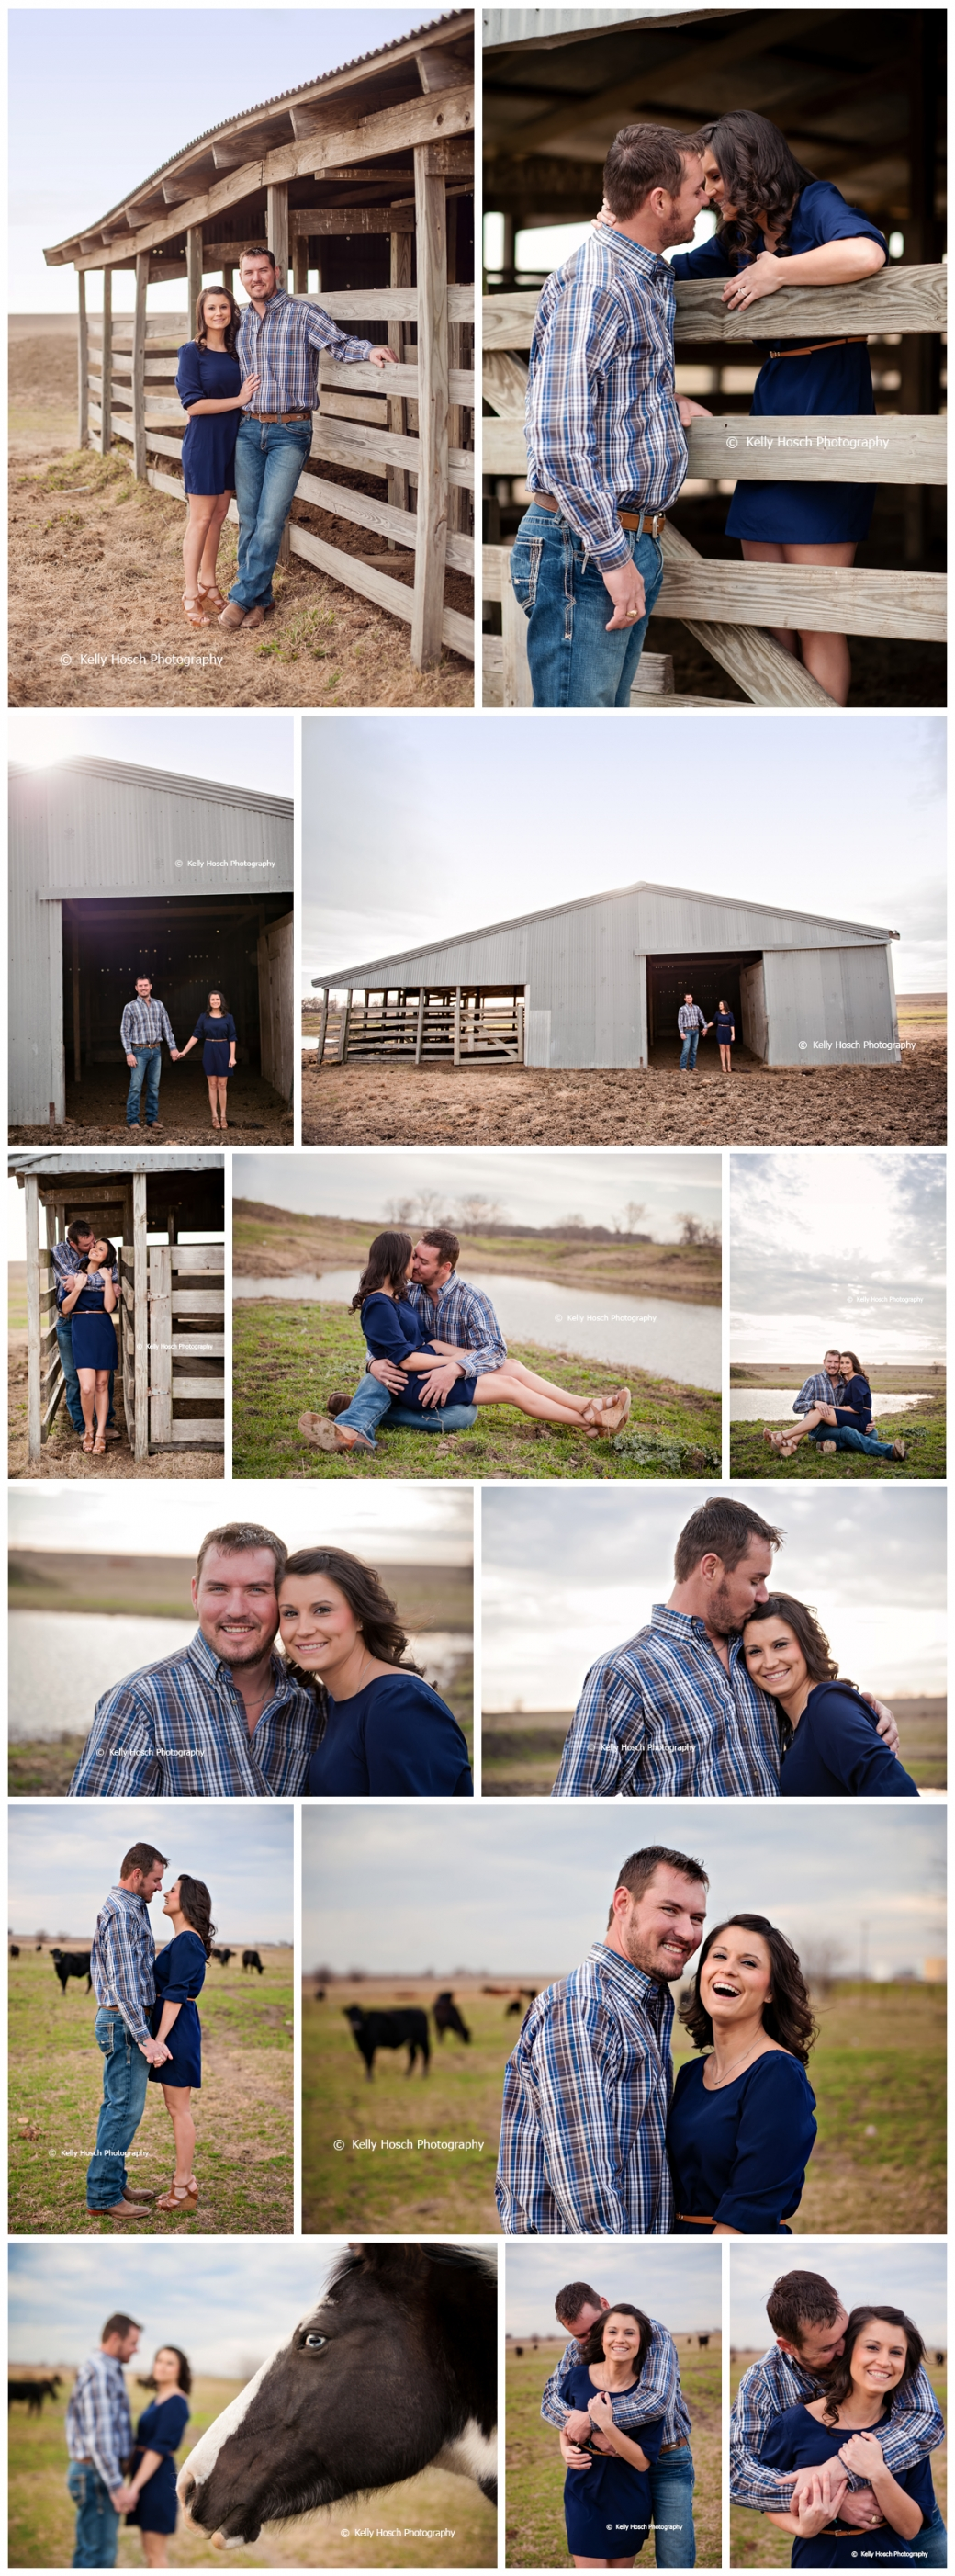 Temple, Belton, Salado, Waco, Georgetown, & Round Rock Texas Portrait and Wedding Photographer